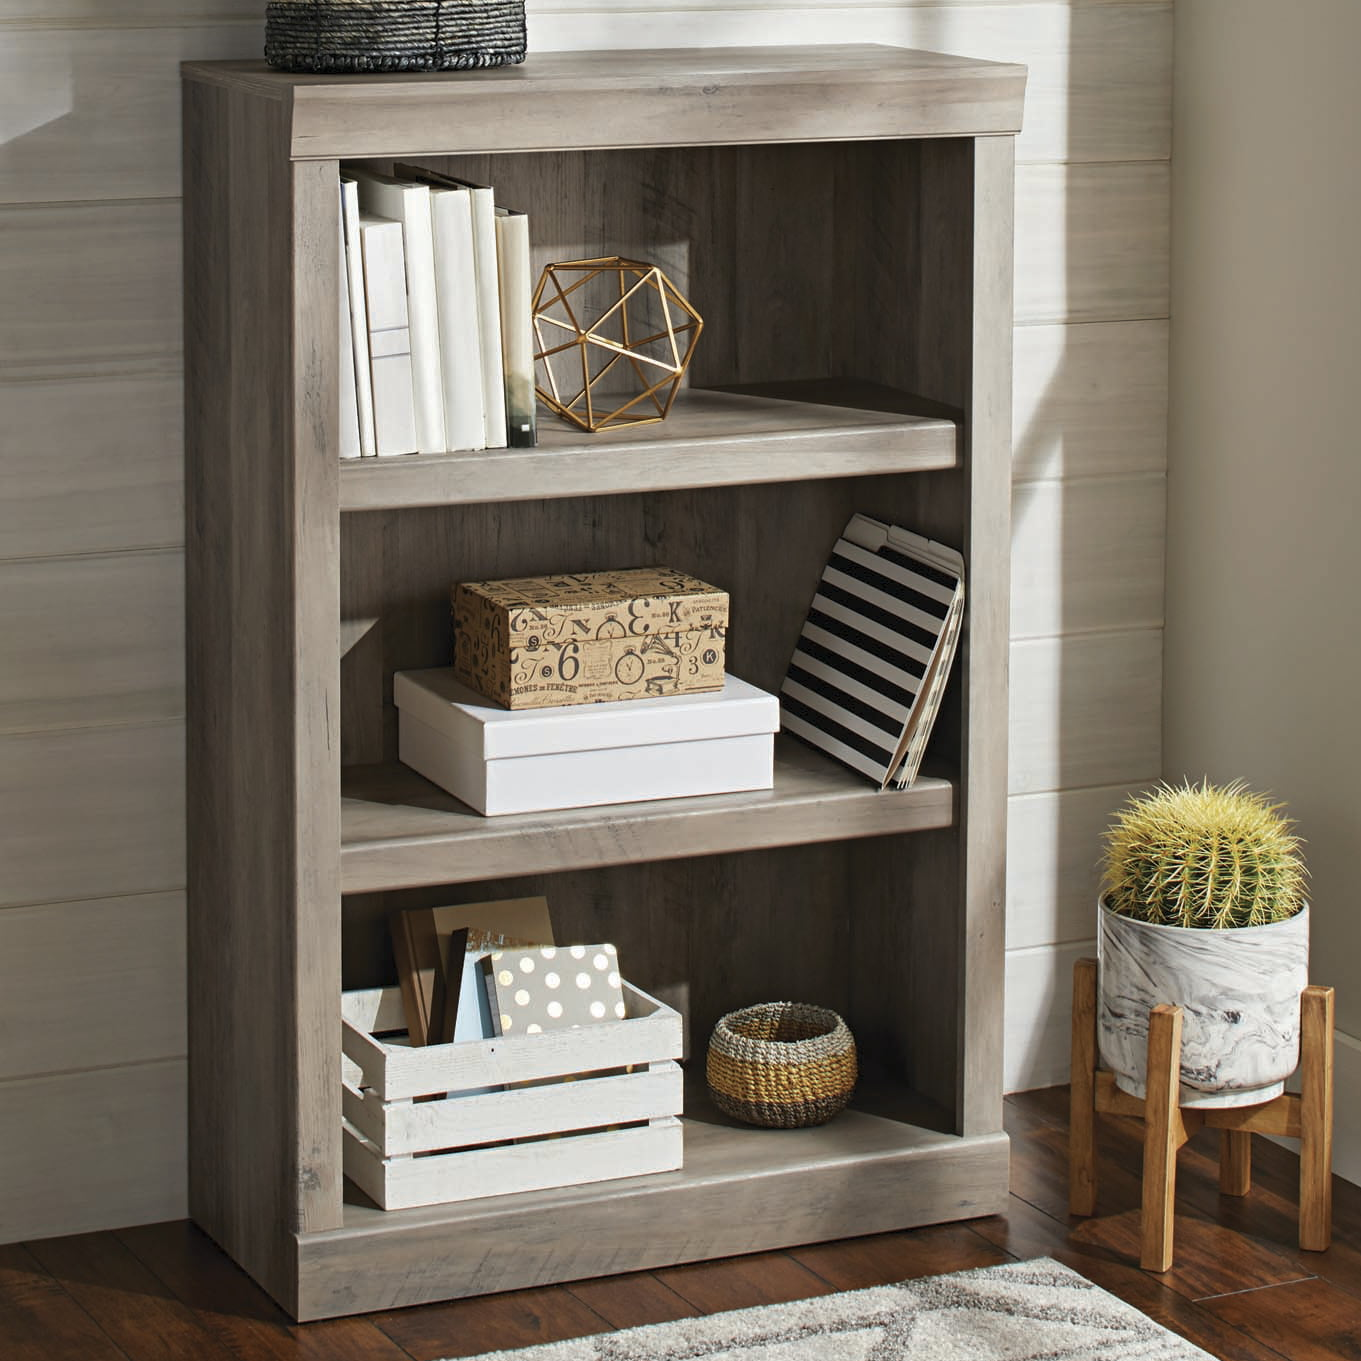 Better homes gardens glendale 3 shelf bookcase rustic - Better homes and gardens bookshelf ...